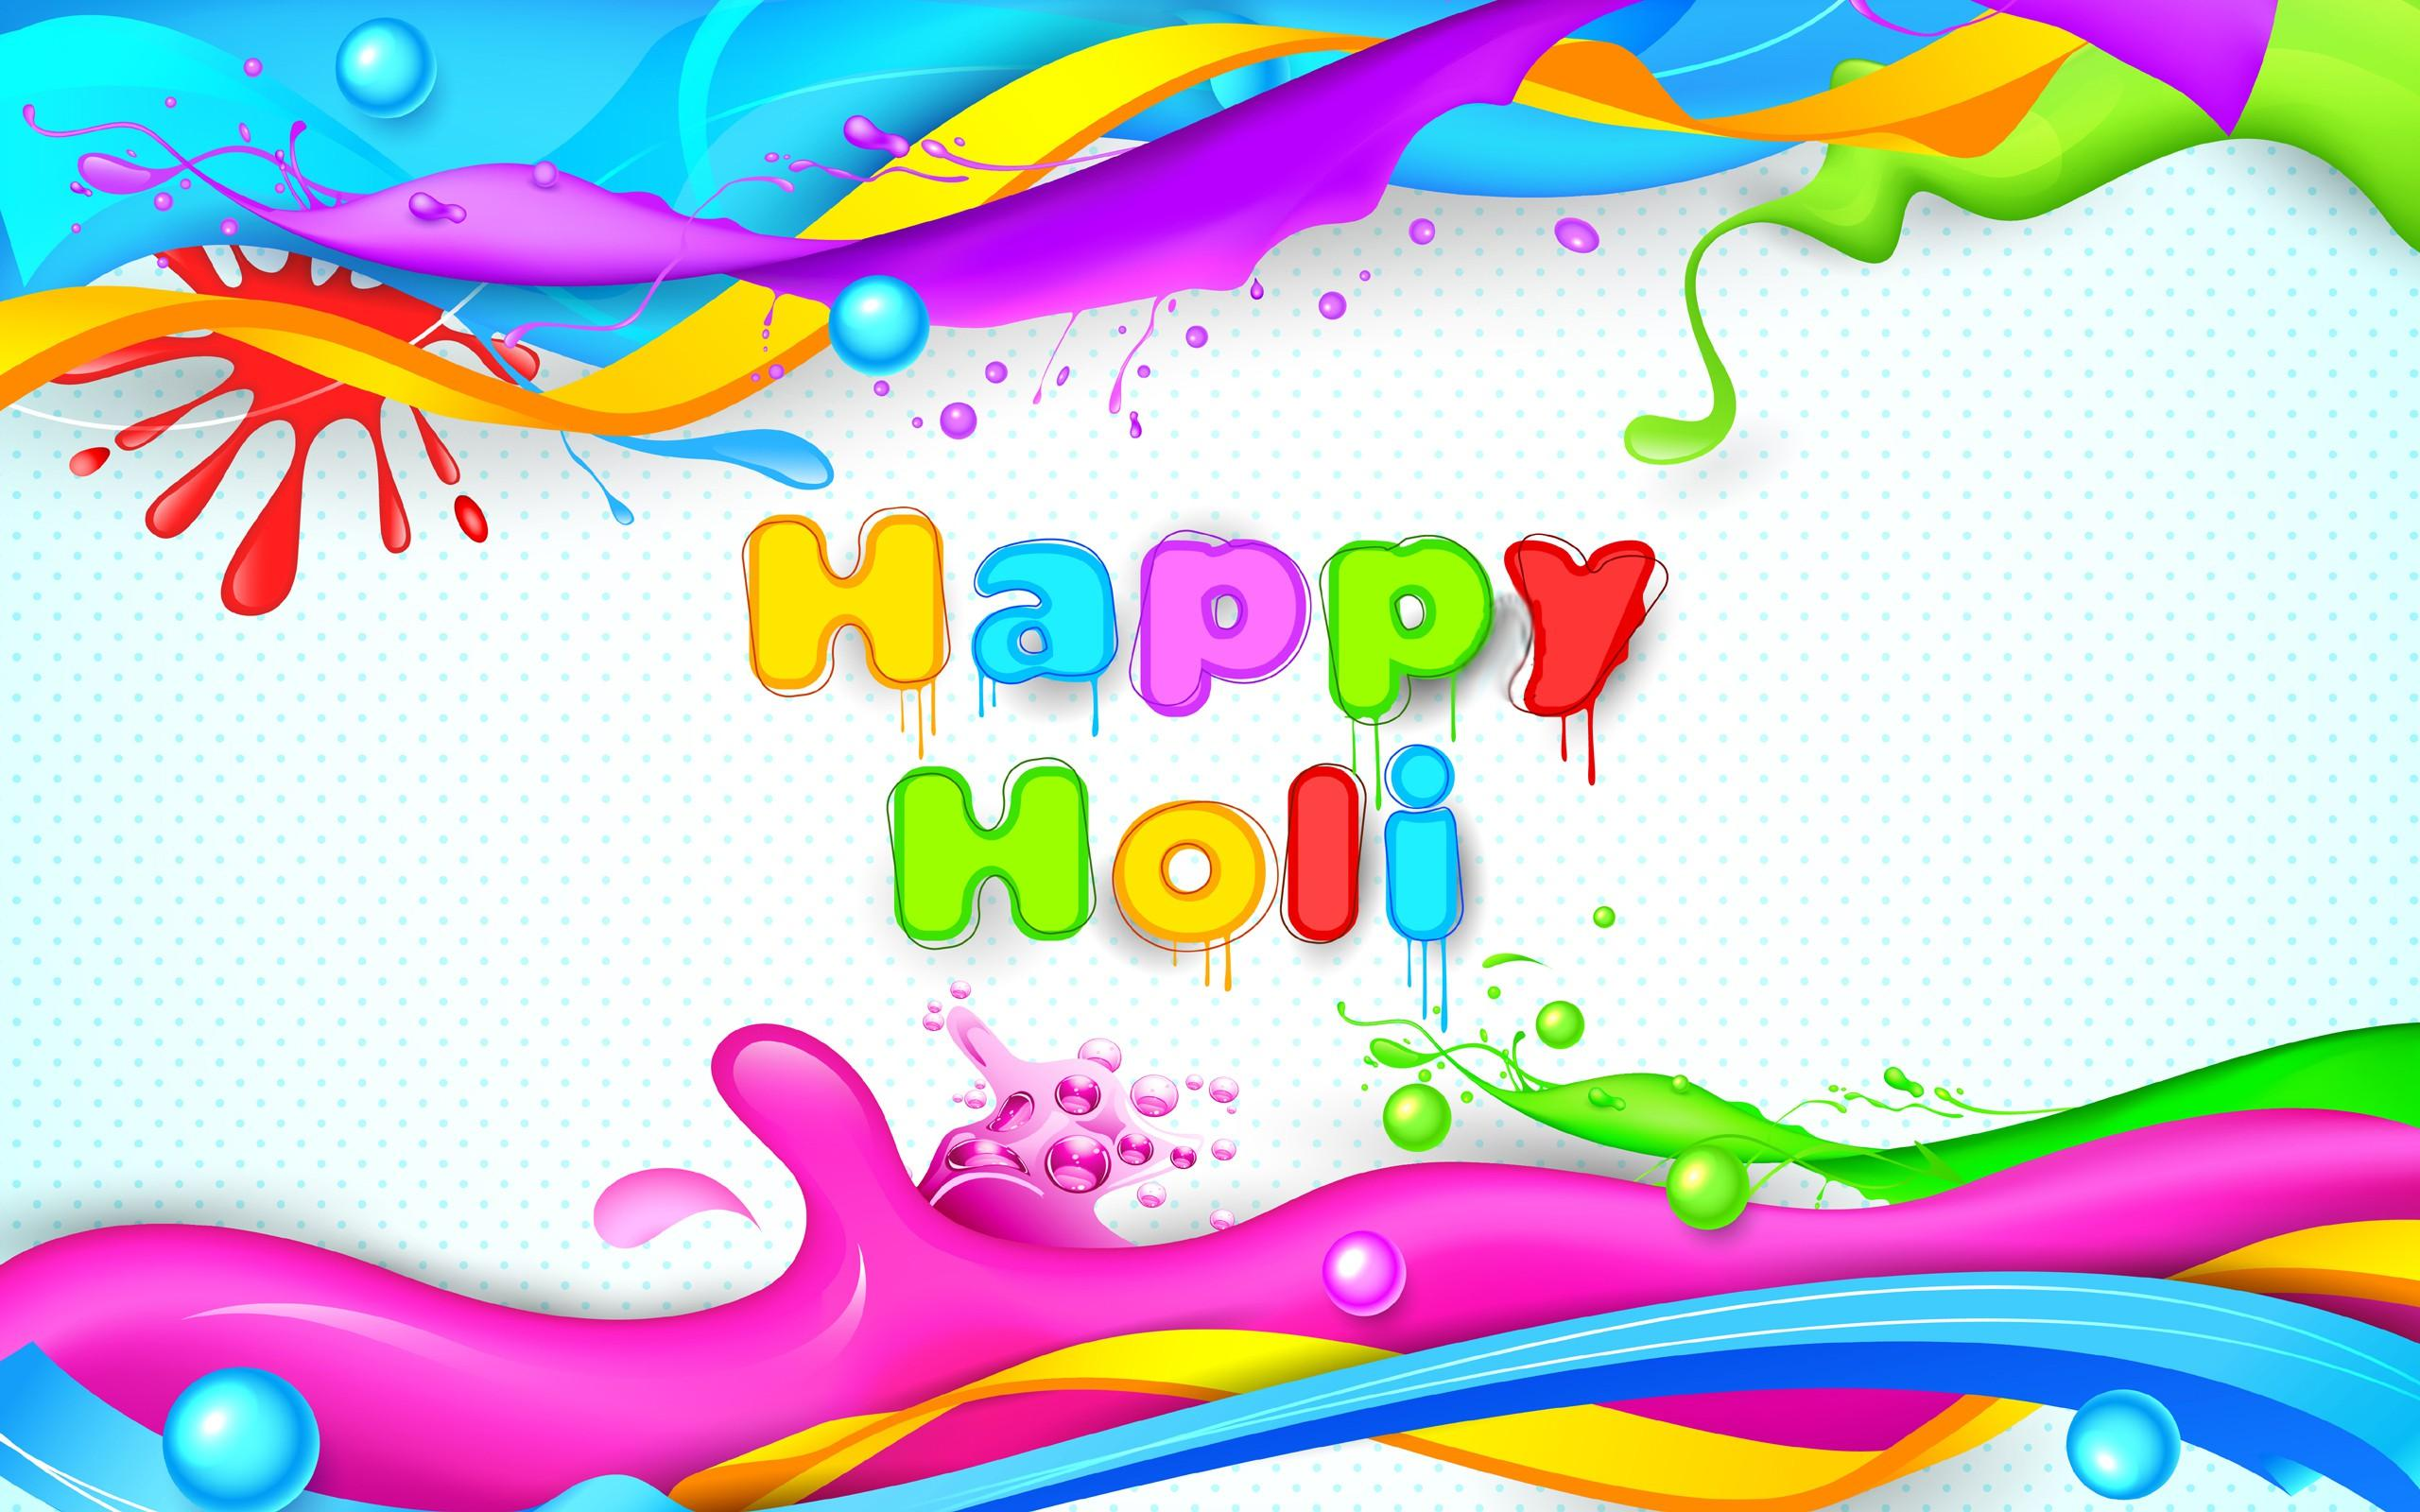 Download Holi Hd Wallpapers For Hp Laptop Holi Wallpapers And